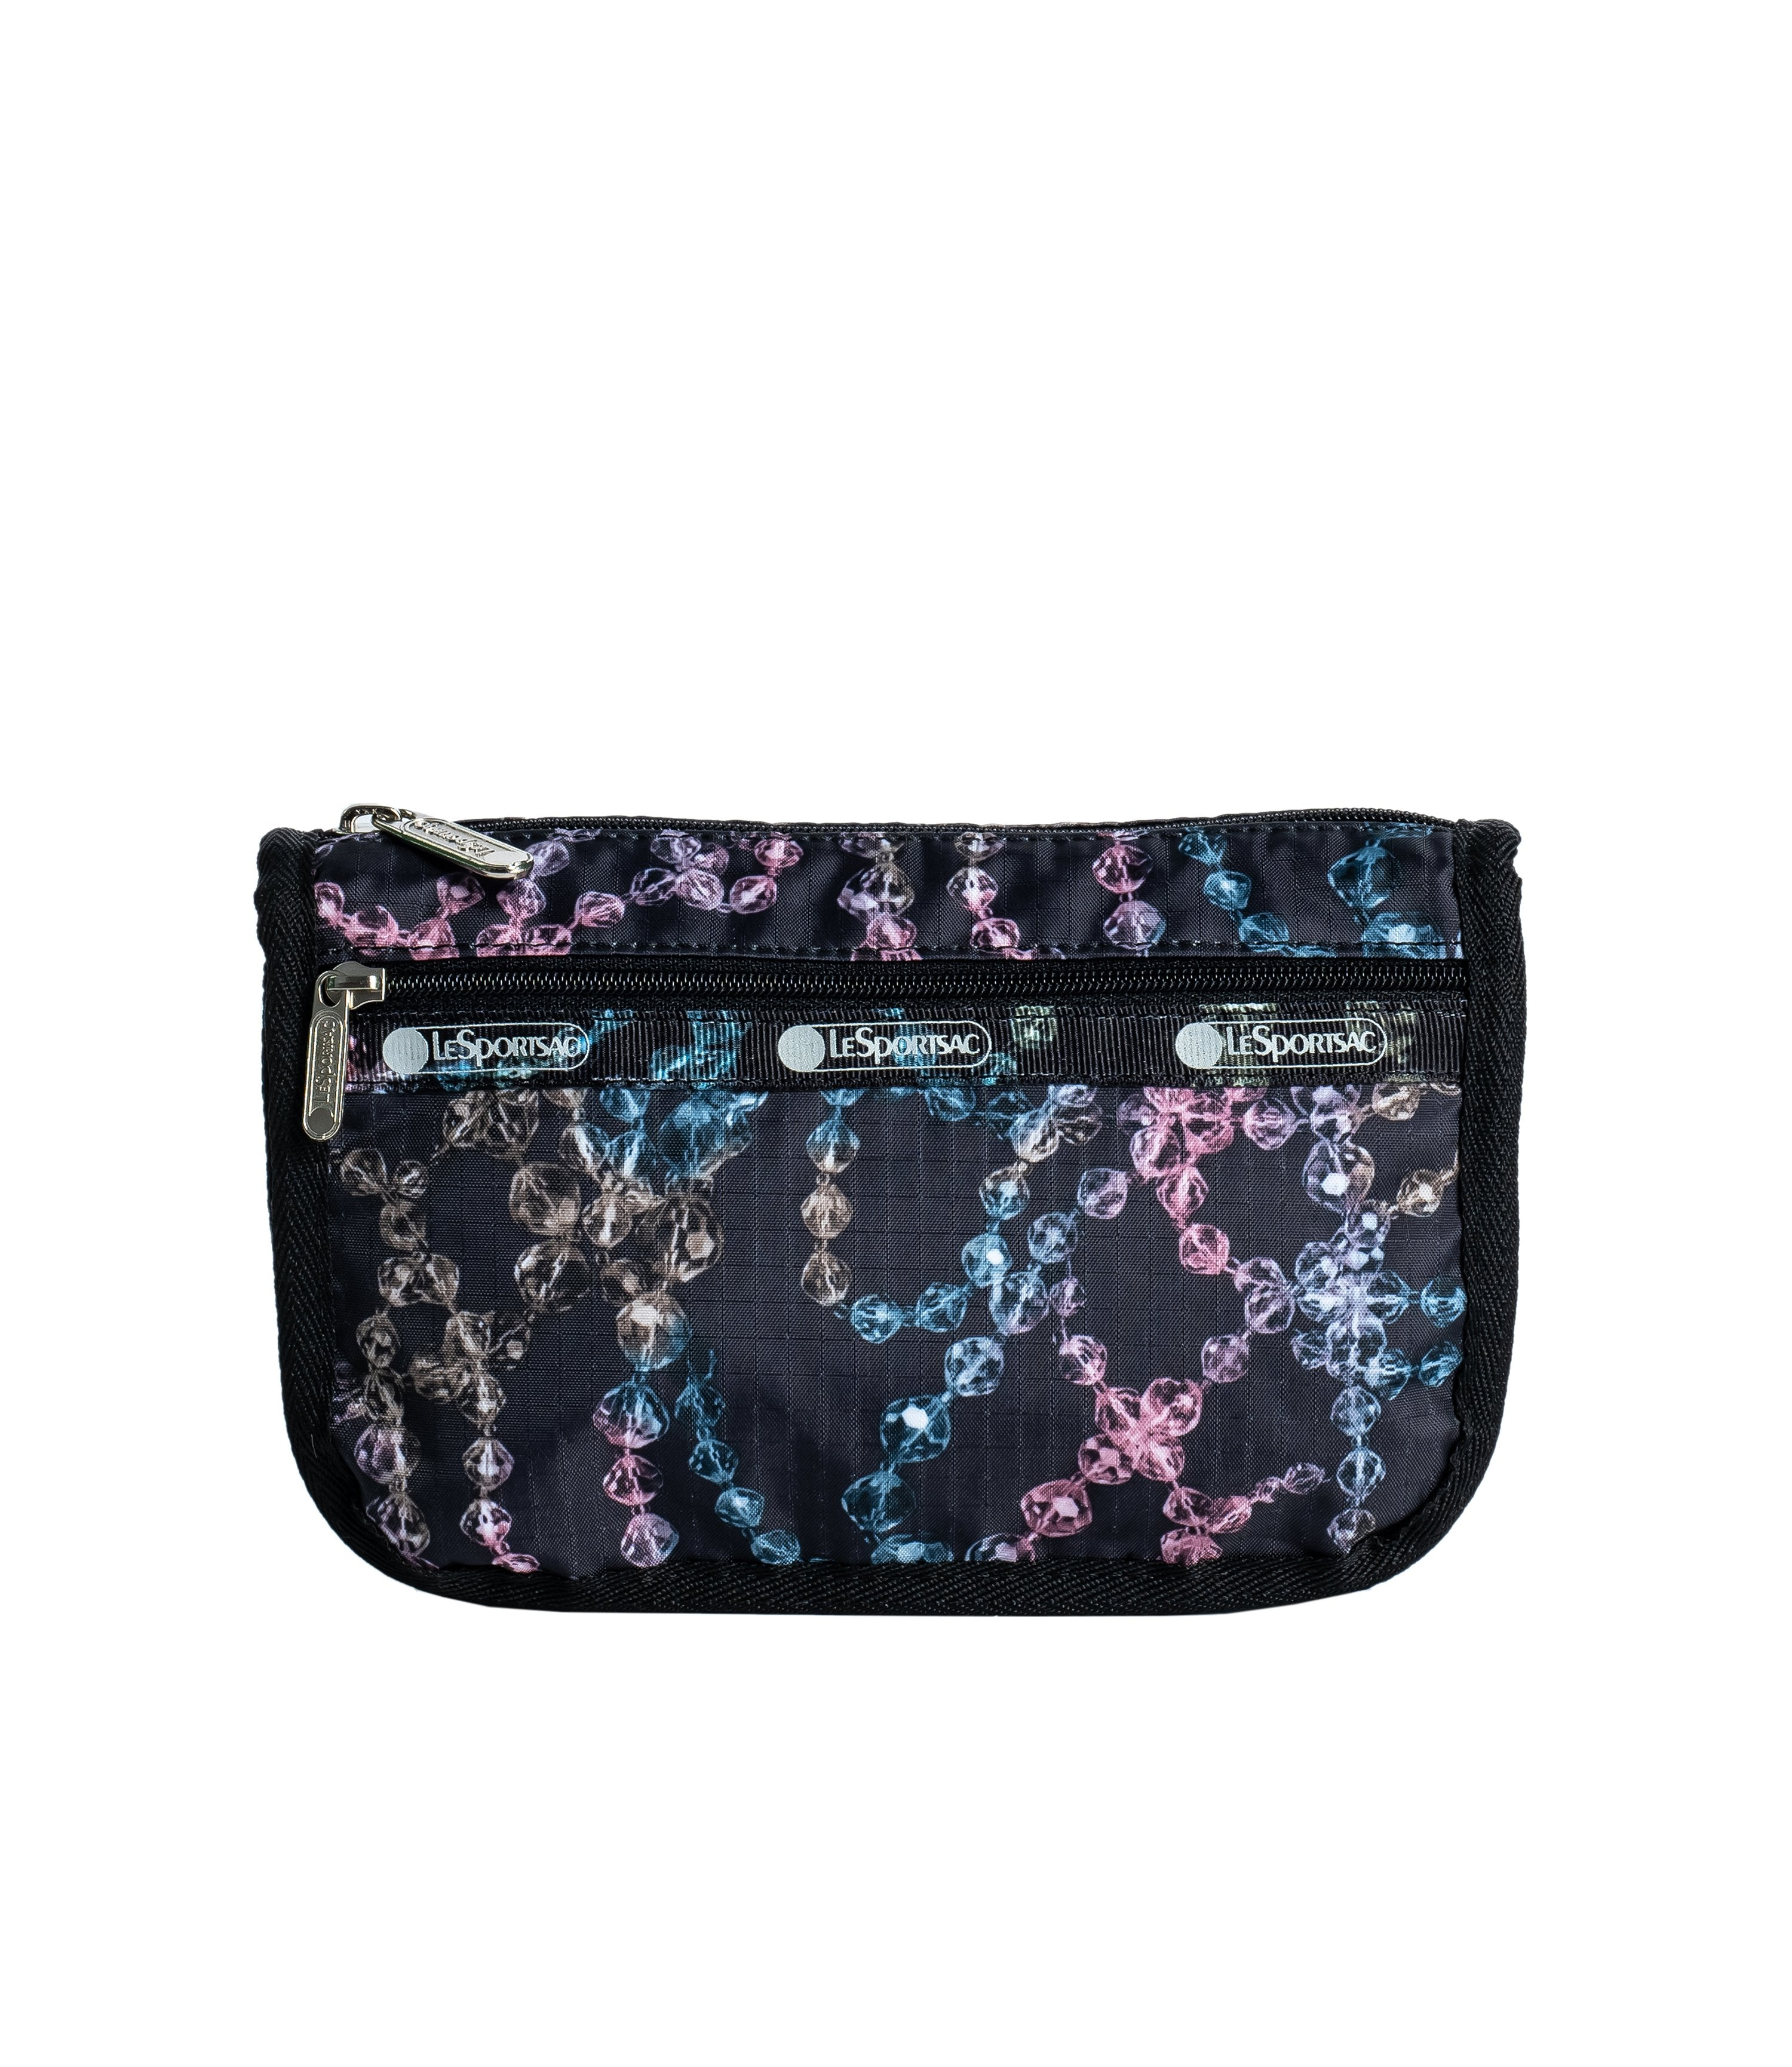 LeSportsac - Accessories - Travel Cosmetic - And All That Glitz print